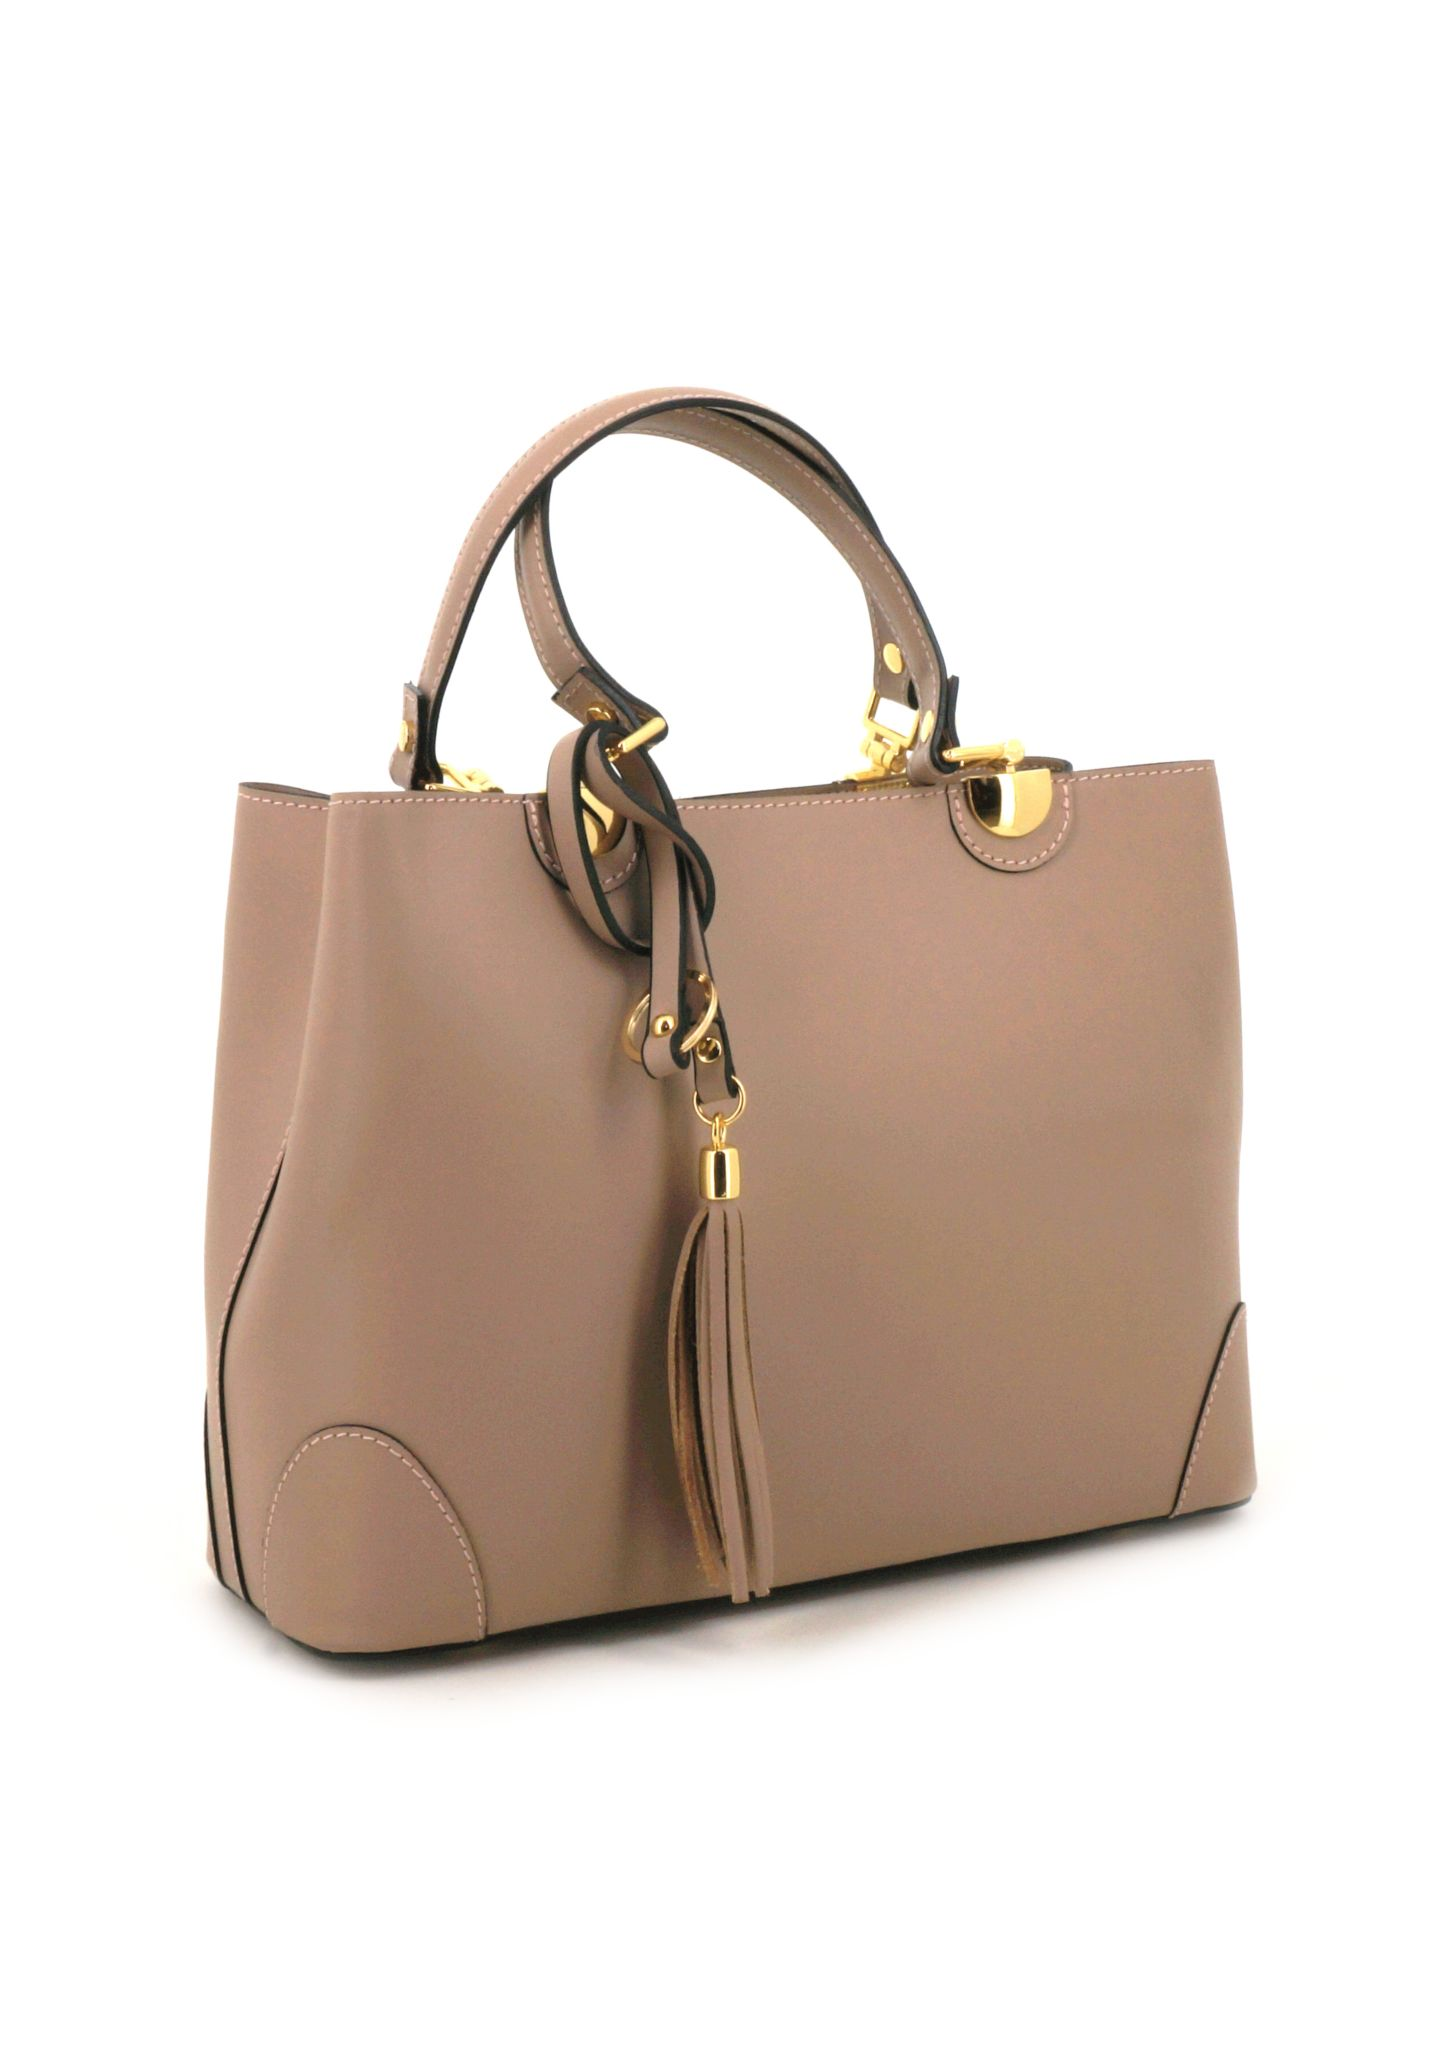 Beige Ruga Leather Double Handle Handbag With Strap 019 detail 1